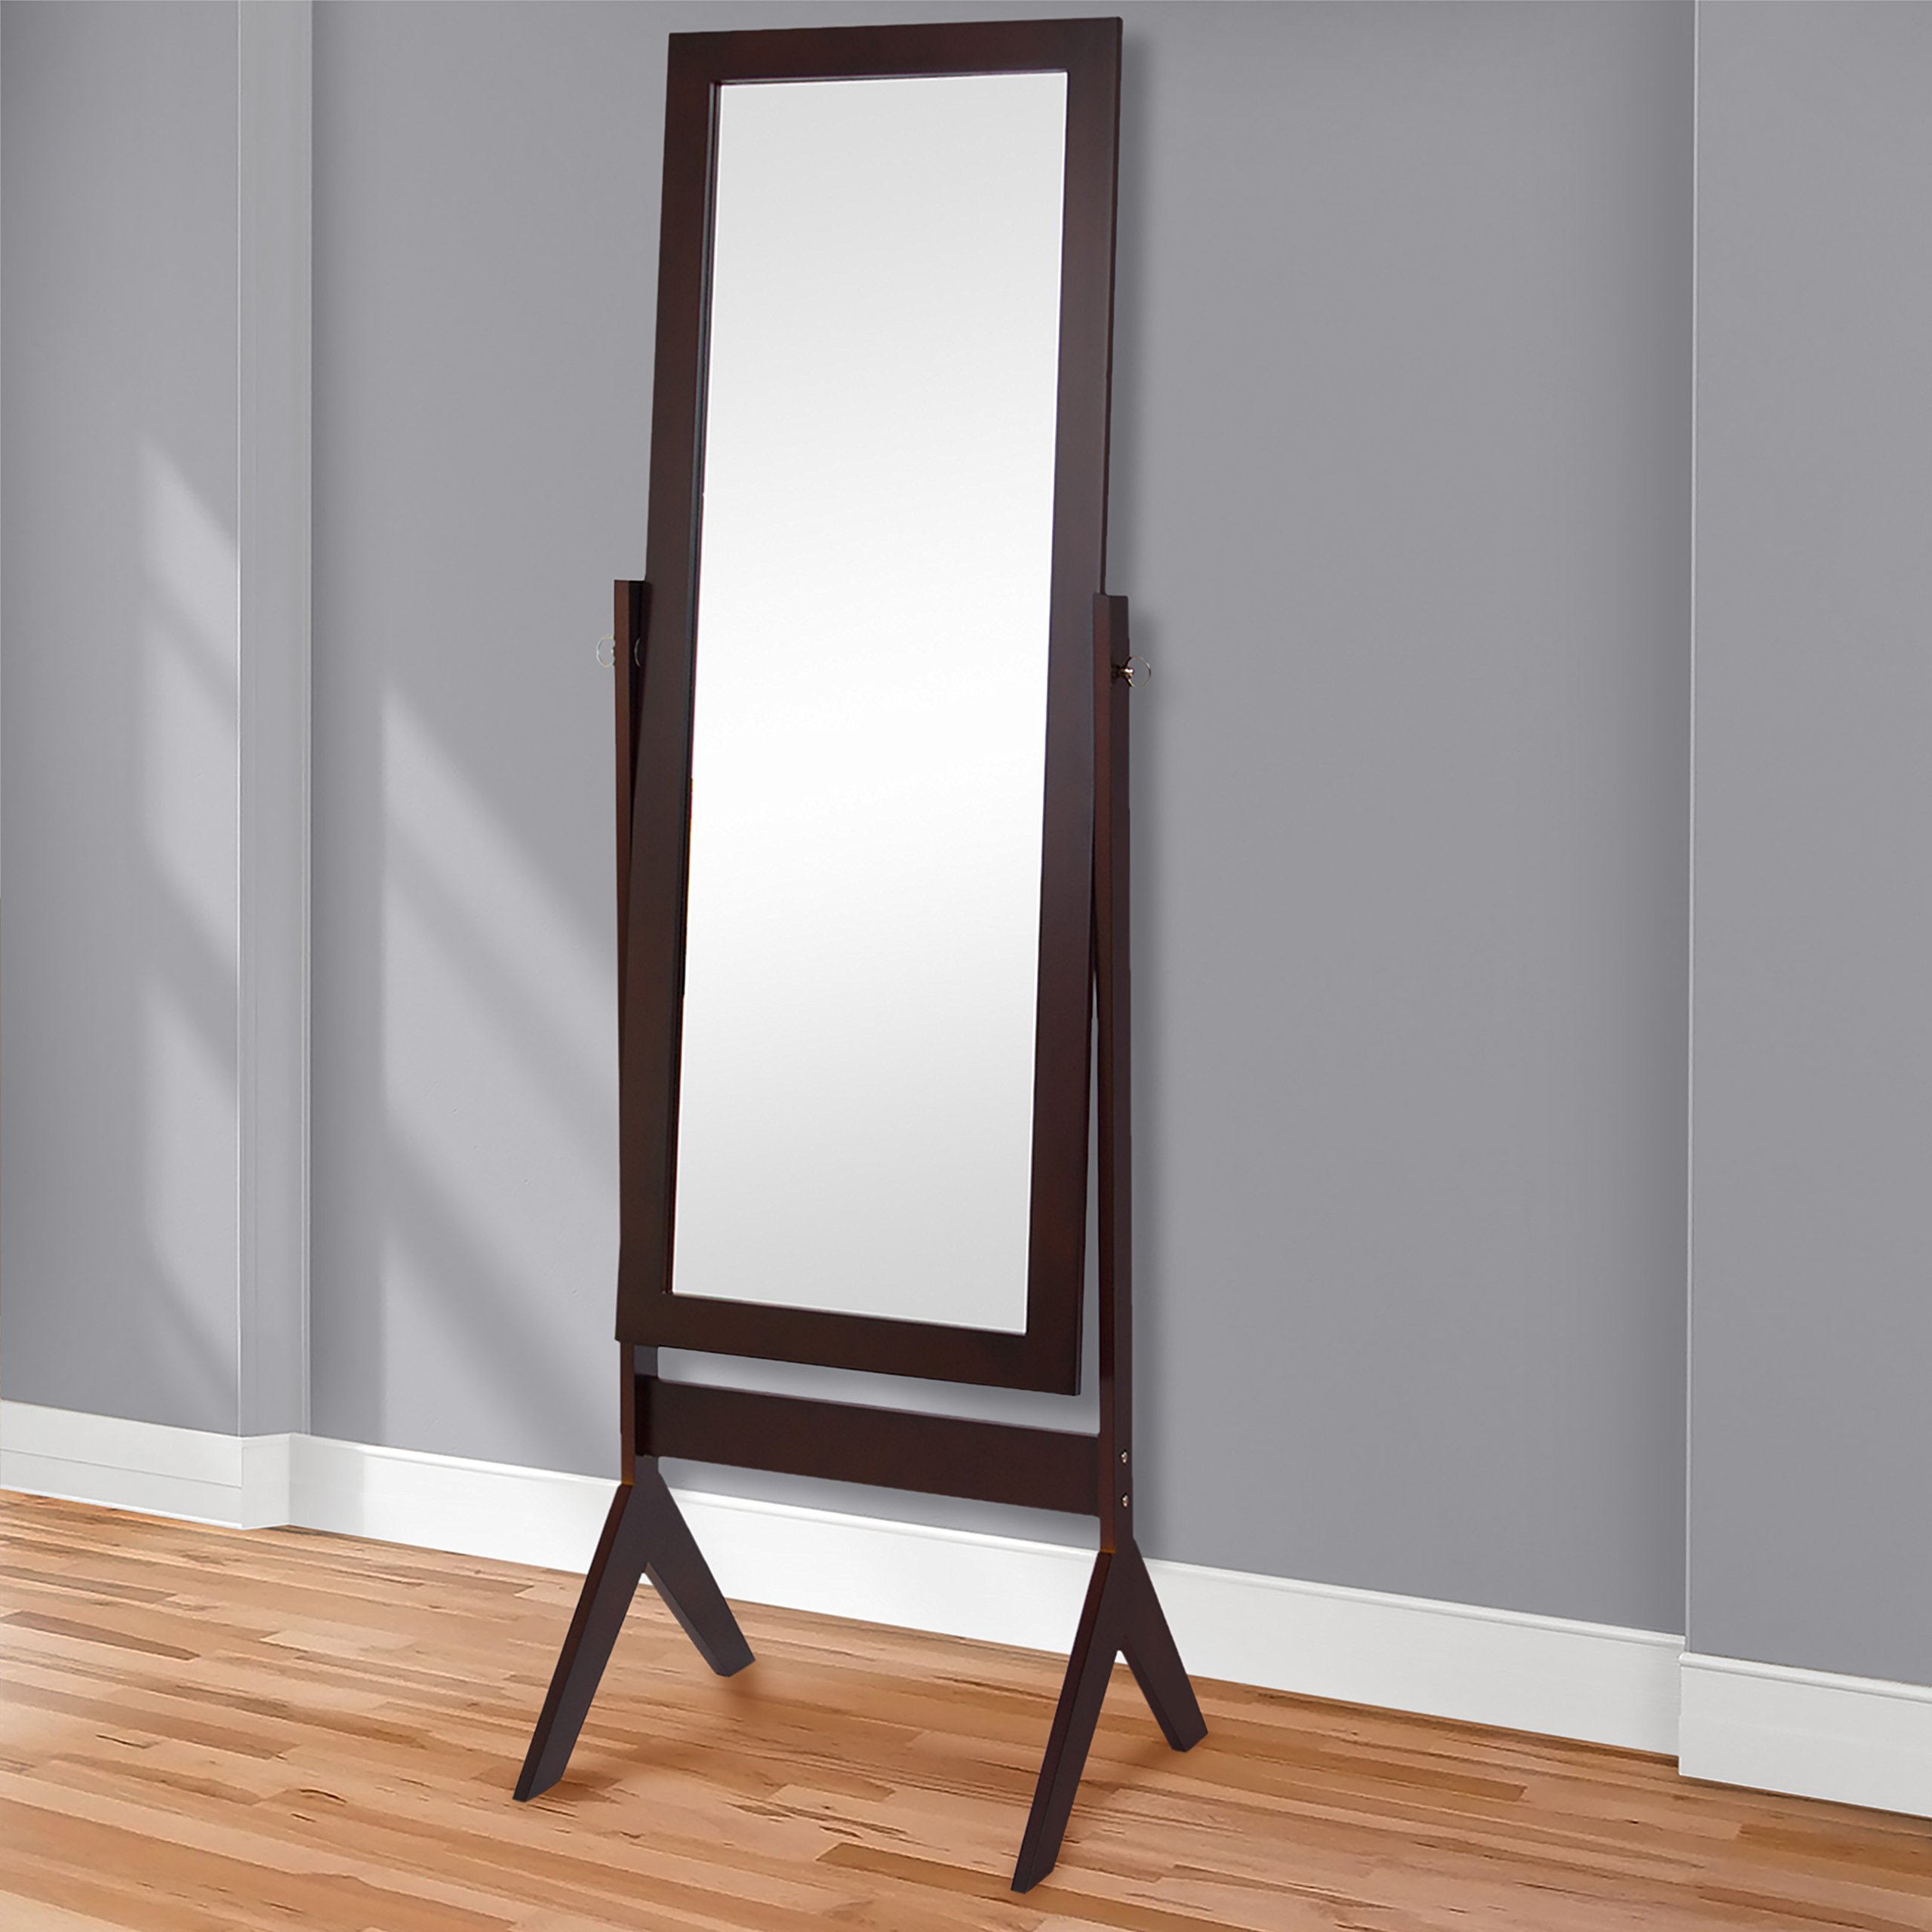 Best Choice Products 65'' Full-Length Cheval Floor Mirror Bedroom Home Furniture Decor - Brown